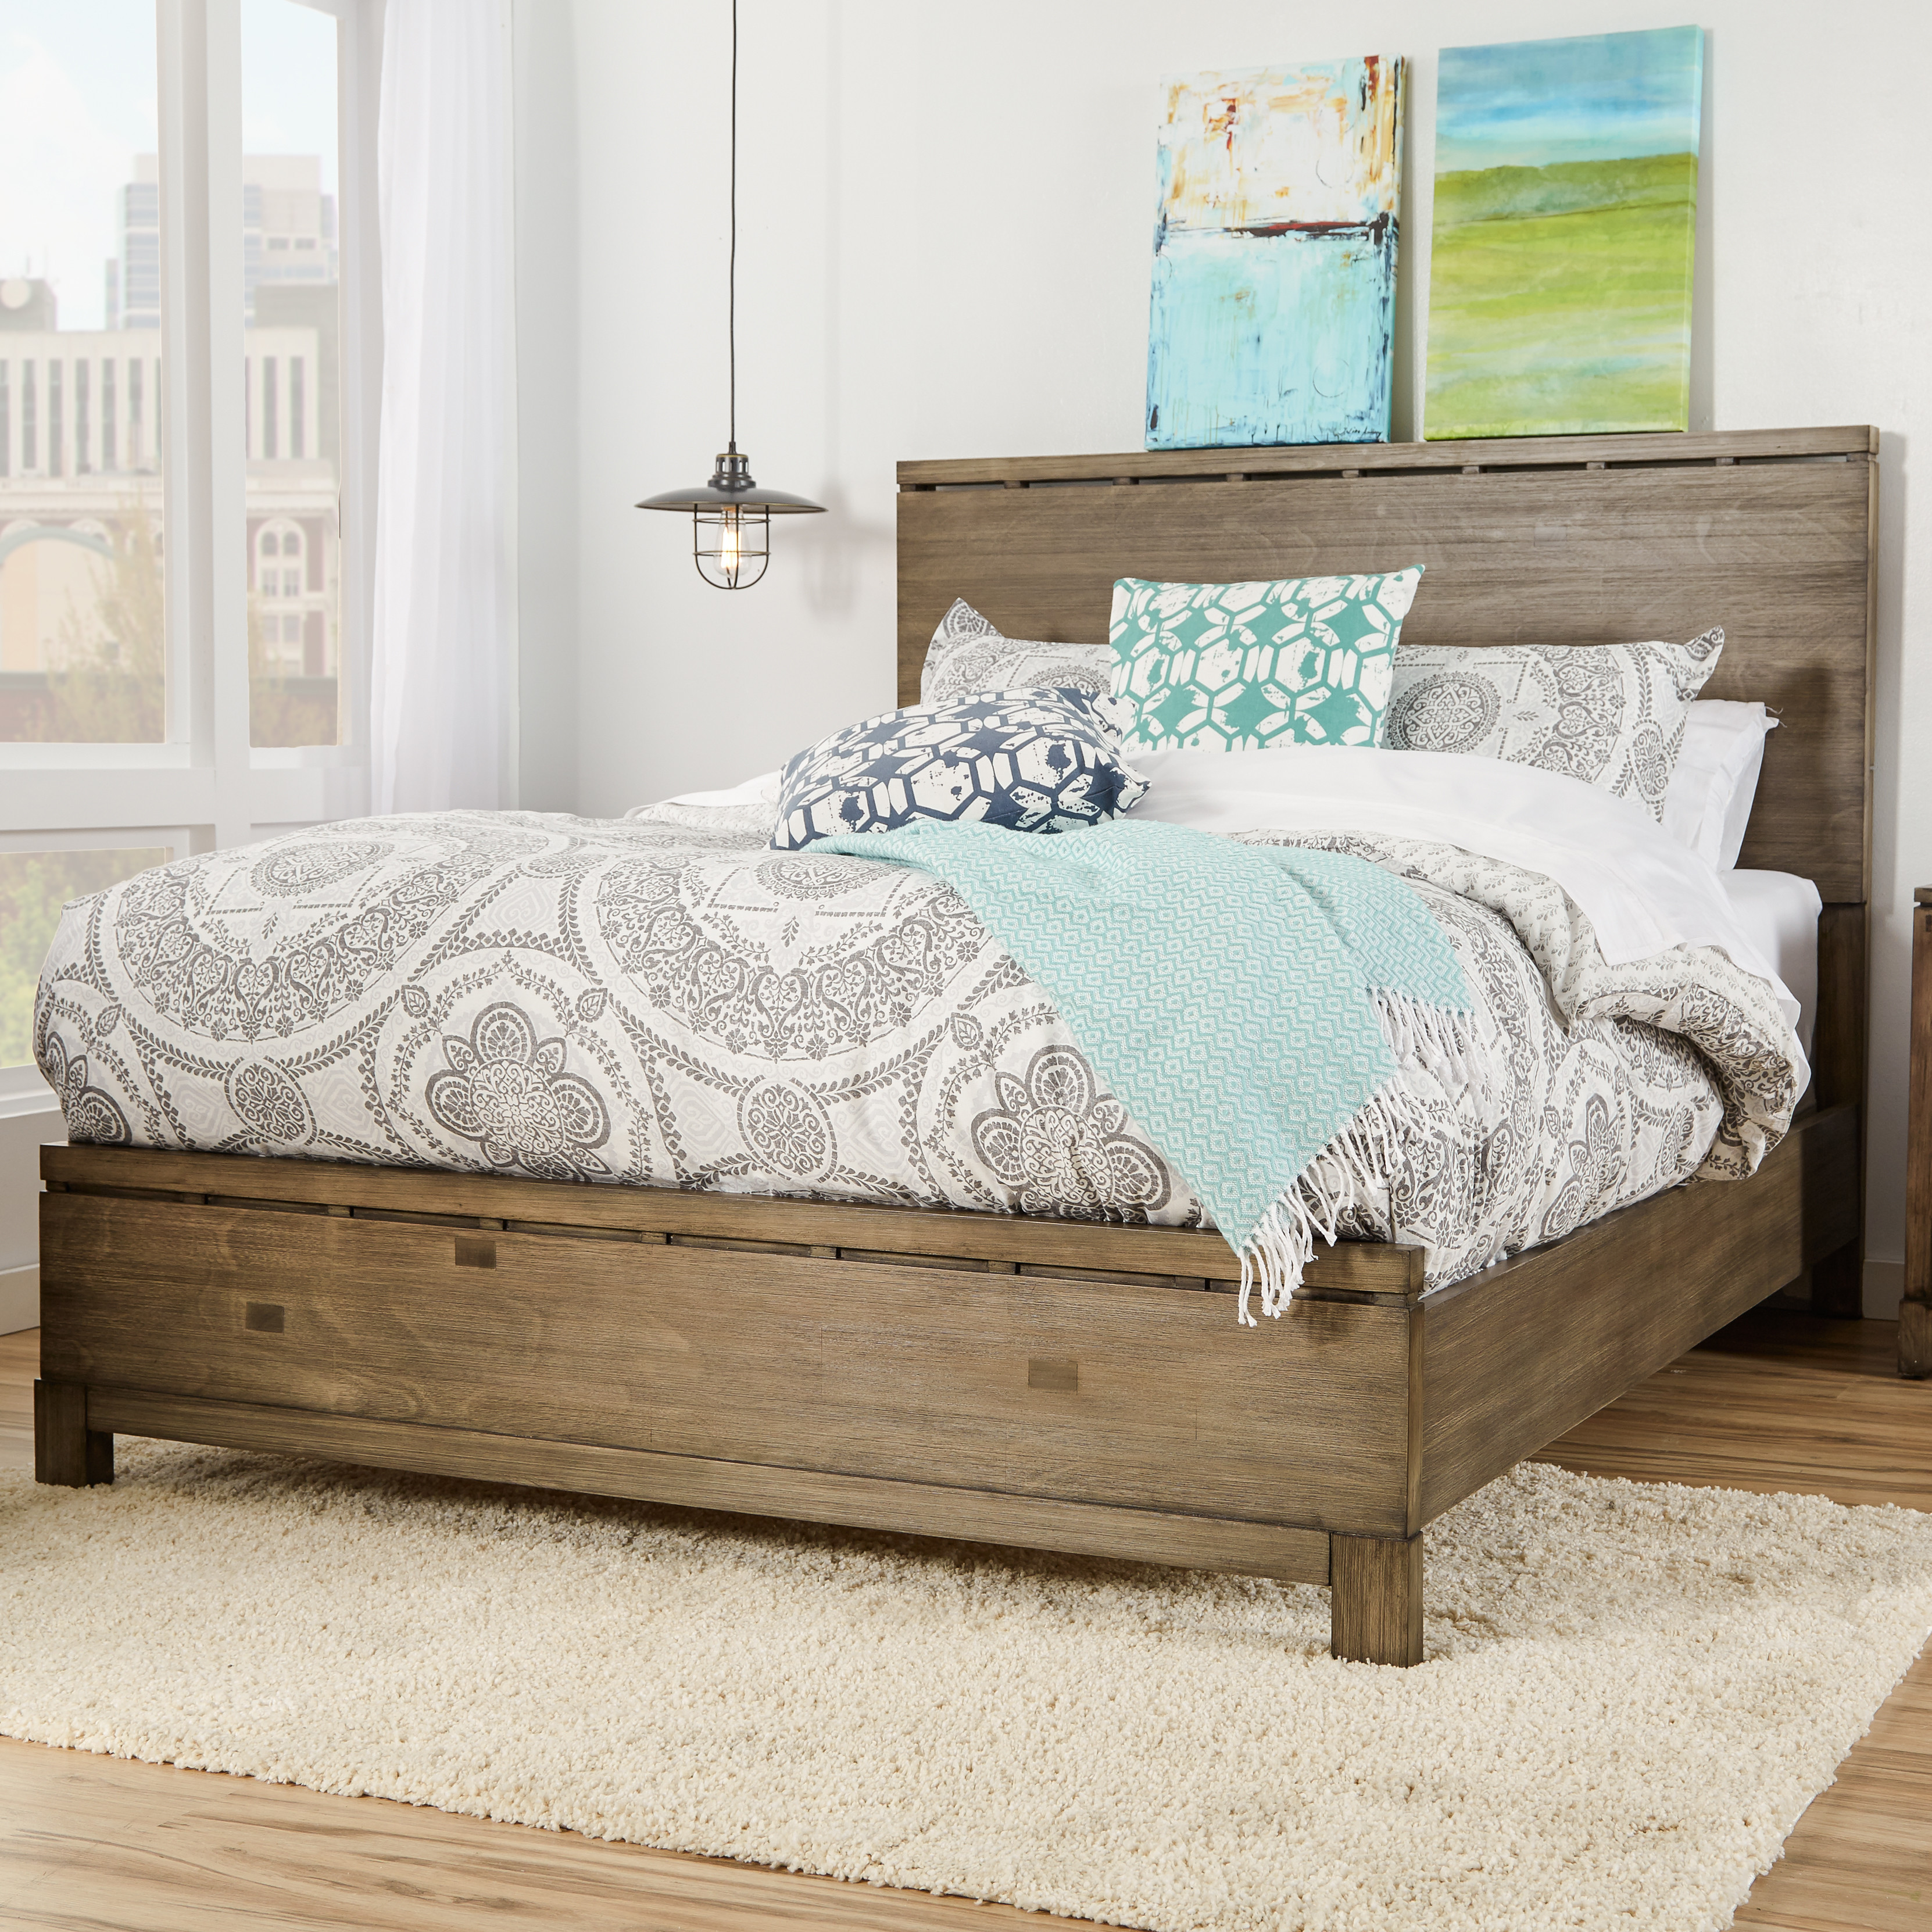 Best ideas about Wayfair Bedroom Sets . Save or Pin Apollo forter Set Now.